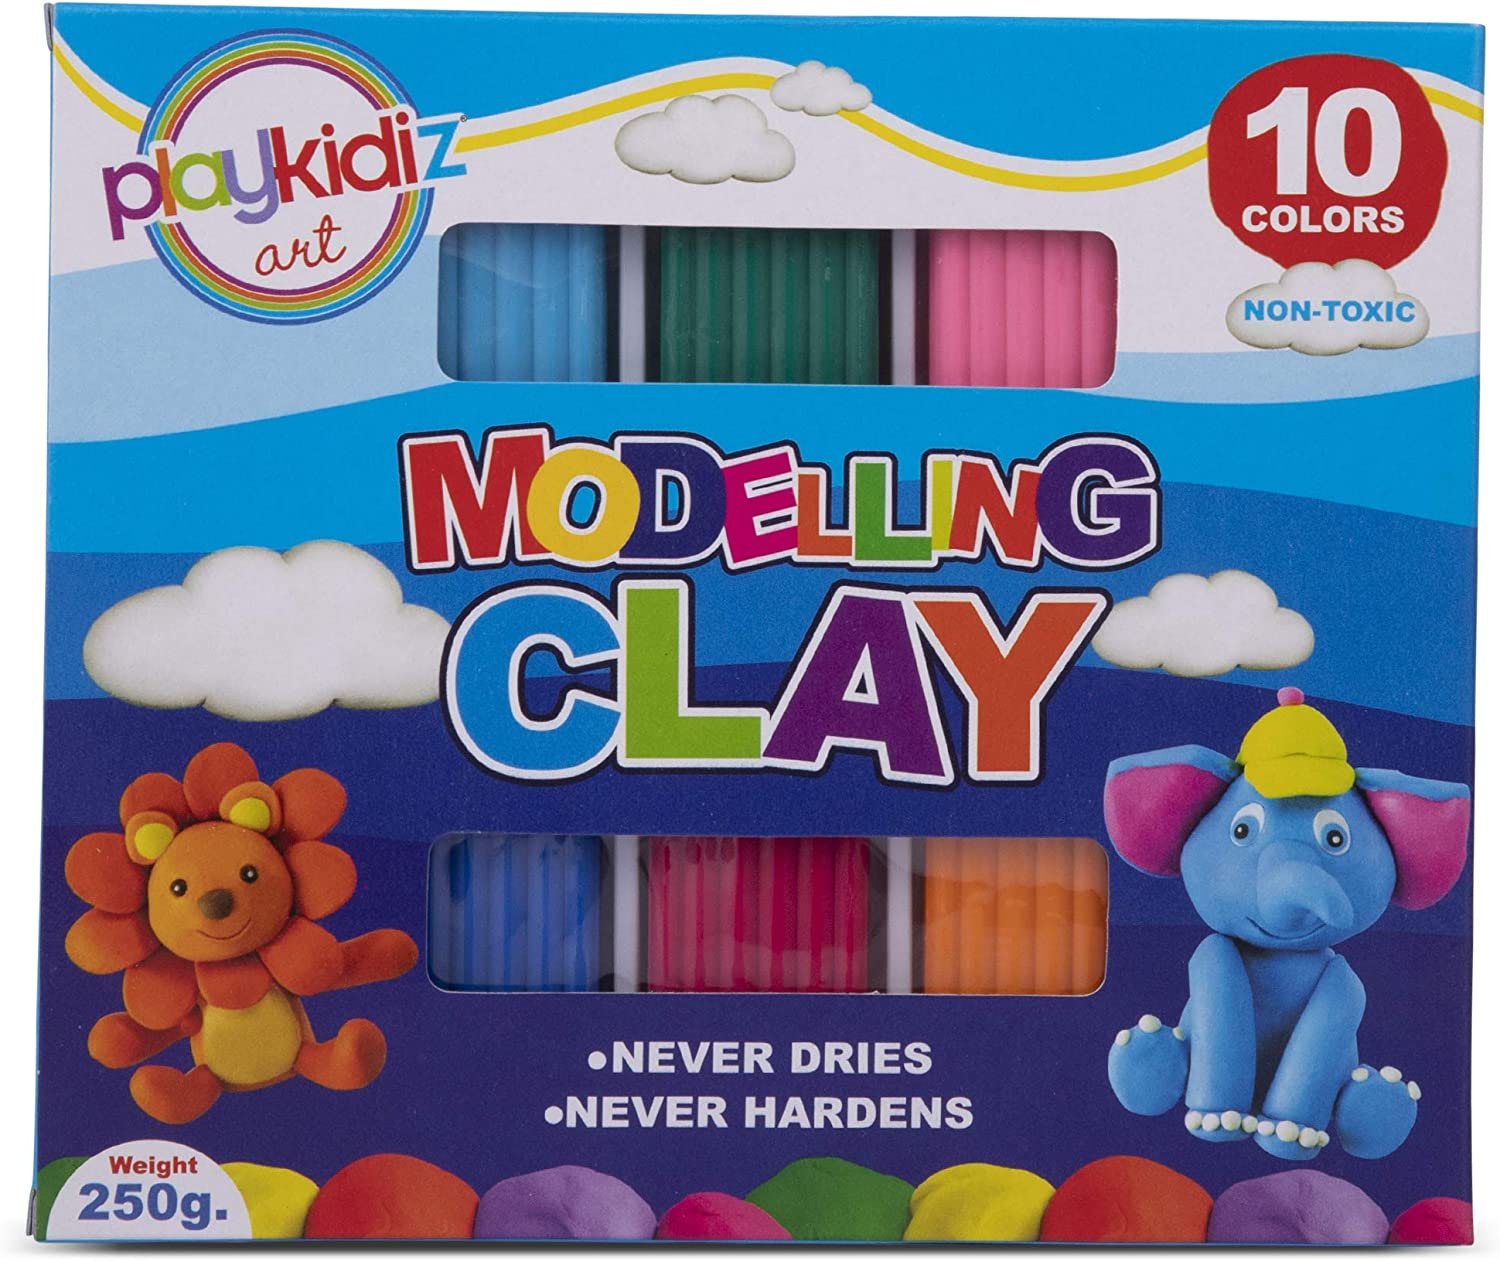 Playkidiz Art Modeling Clay Tools, Assorted Moulds and Colors STEM Educational DIY Molding Set, at Home Crafts for Kids (3114)